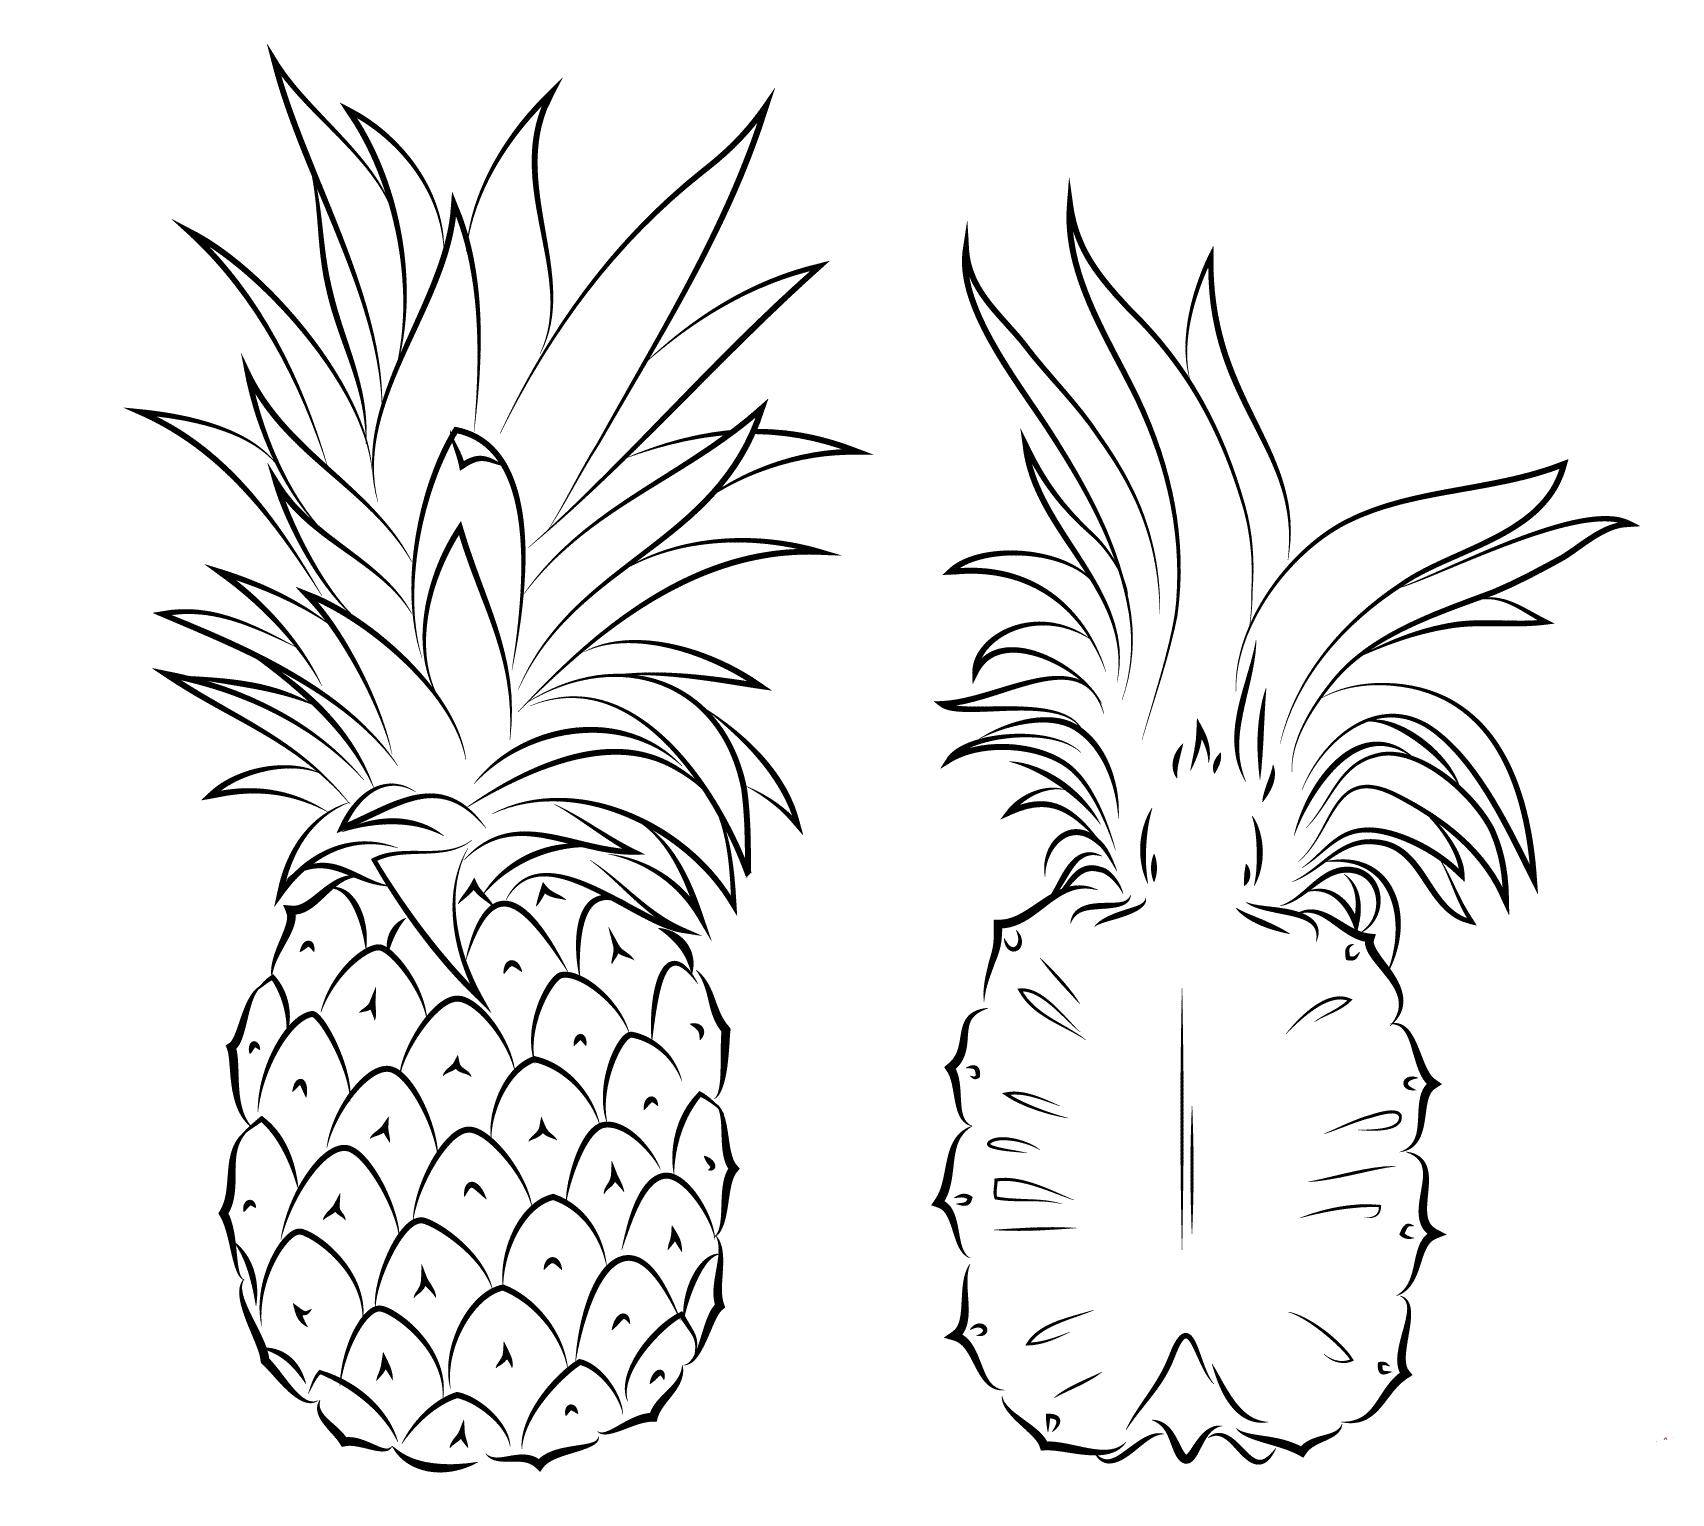 pineapple colouring picture superb delicious juicy pineapple colouring pages picolour pineapple picture colouring